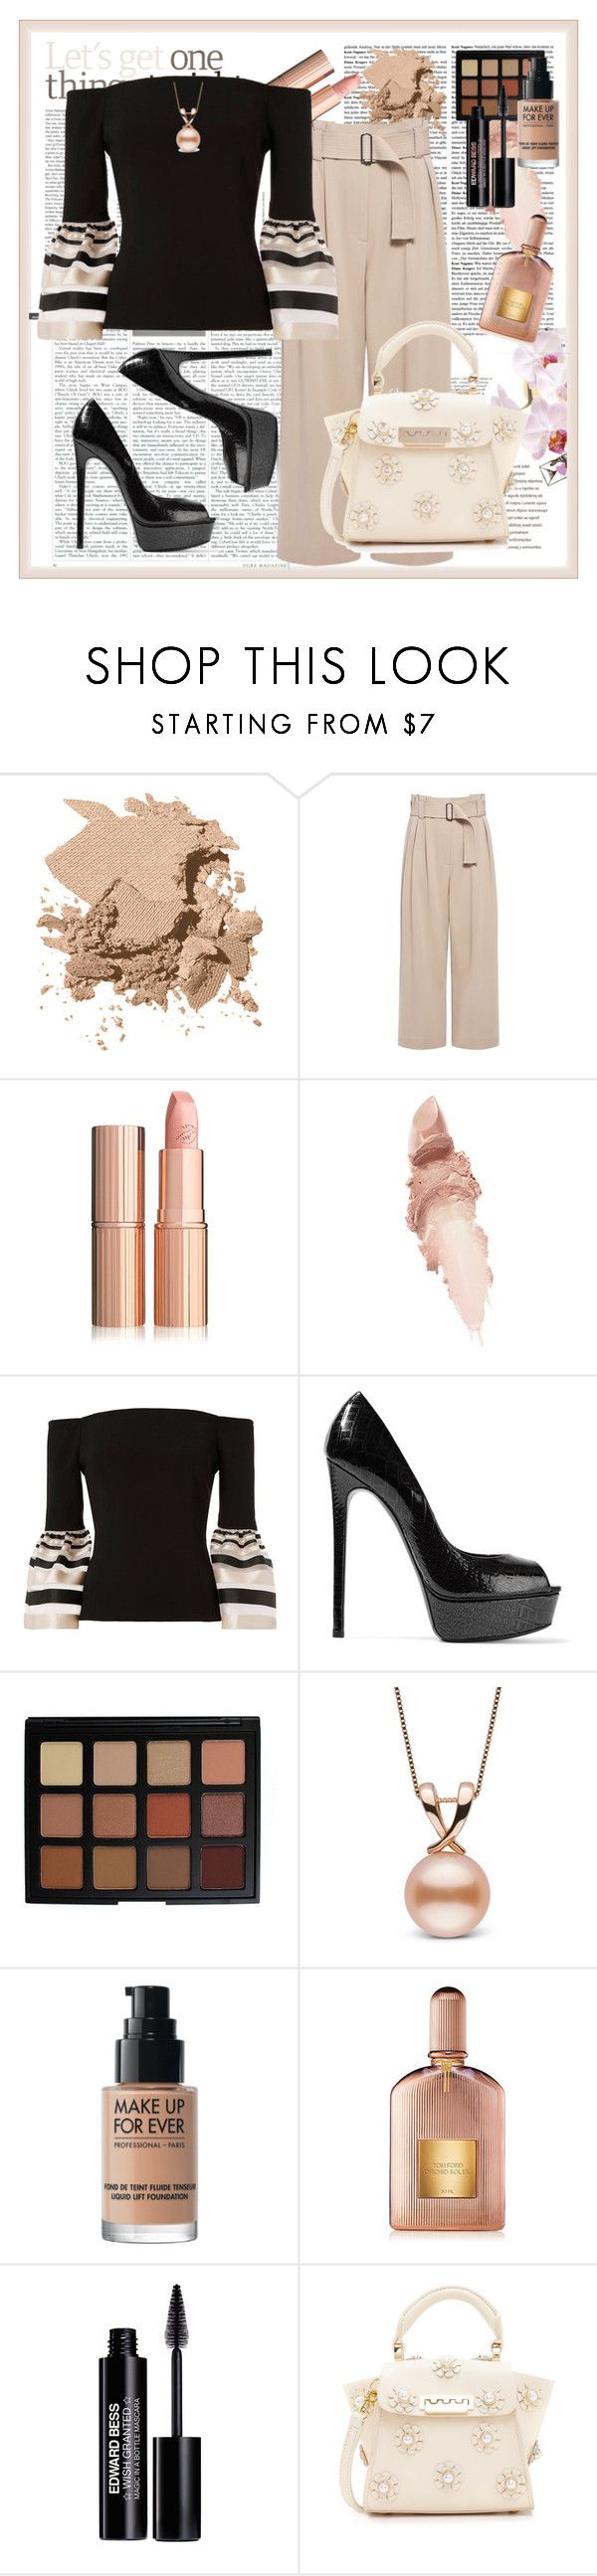 """Nude & Black"" by stars-5 ❤ liked on Polyvore featuring Bobbi Brown Cosmetics, A.L.C., Maybelline, Exclusive for Intermix, Casadei, Morphe, MAKE UP FOR EVER, Tom Ford, Edward Bess and ZAC Zac Posen"